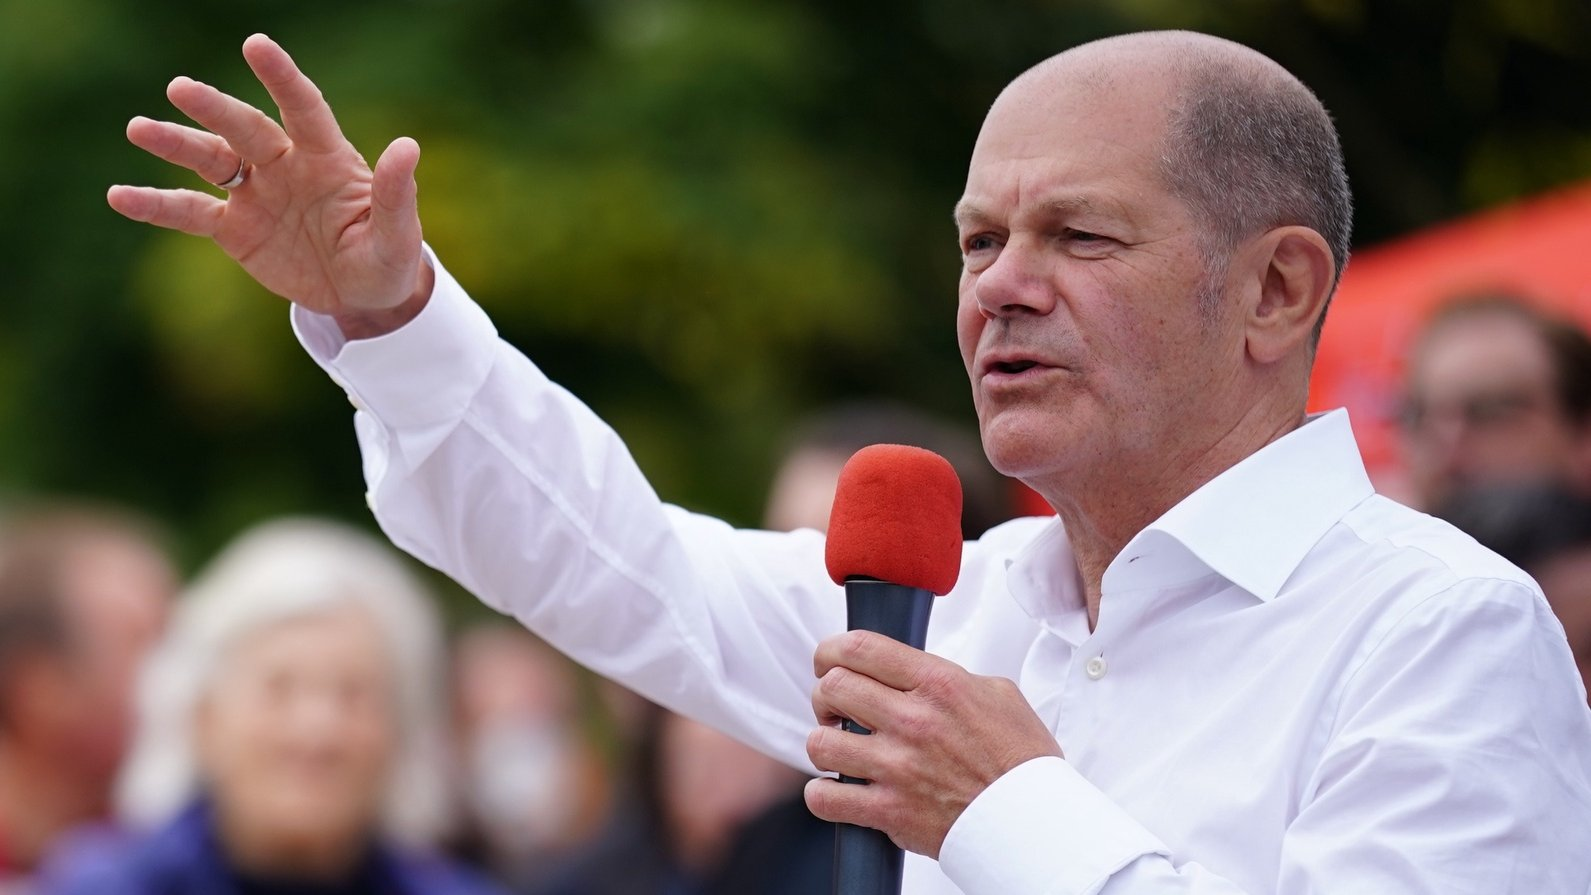 epa09487526 German Minister of Finance and Social Democratic Party (SPD) top candidate for the federal elections Olaf Scholz speaks during the campaign closing of the regional Social Democratic Party (SPD) in Potsdam, Germany, 25 September 2021. German Minister of Finance and Social Democratic Party (SPD) top candidate for the federal elections Olaf Scholz runs for a direct candidate mandate in his home constituency in Potsdam, Brandenburg, during the German federal elections on 26 September 2021.  EPA/CLEMENS BILAN